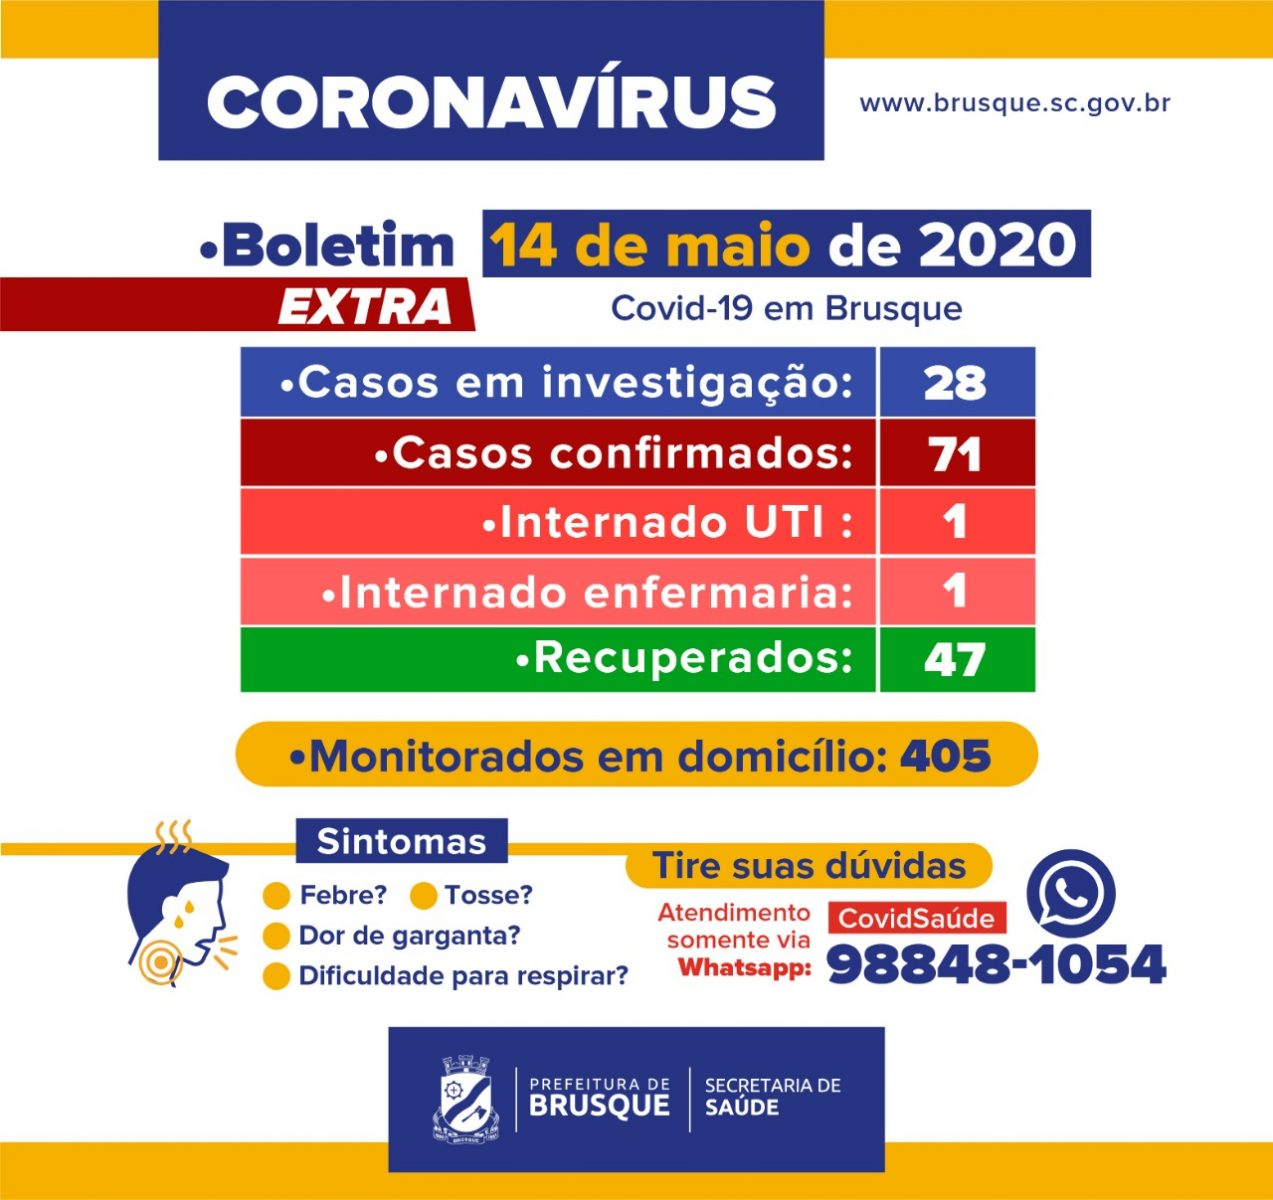 Boletim extra: Brusque registra 71 casos de Covid-19